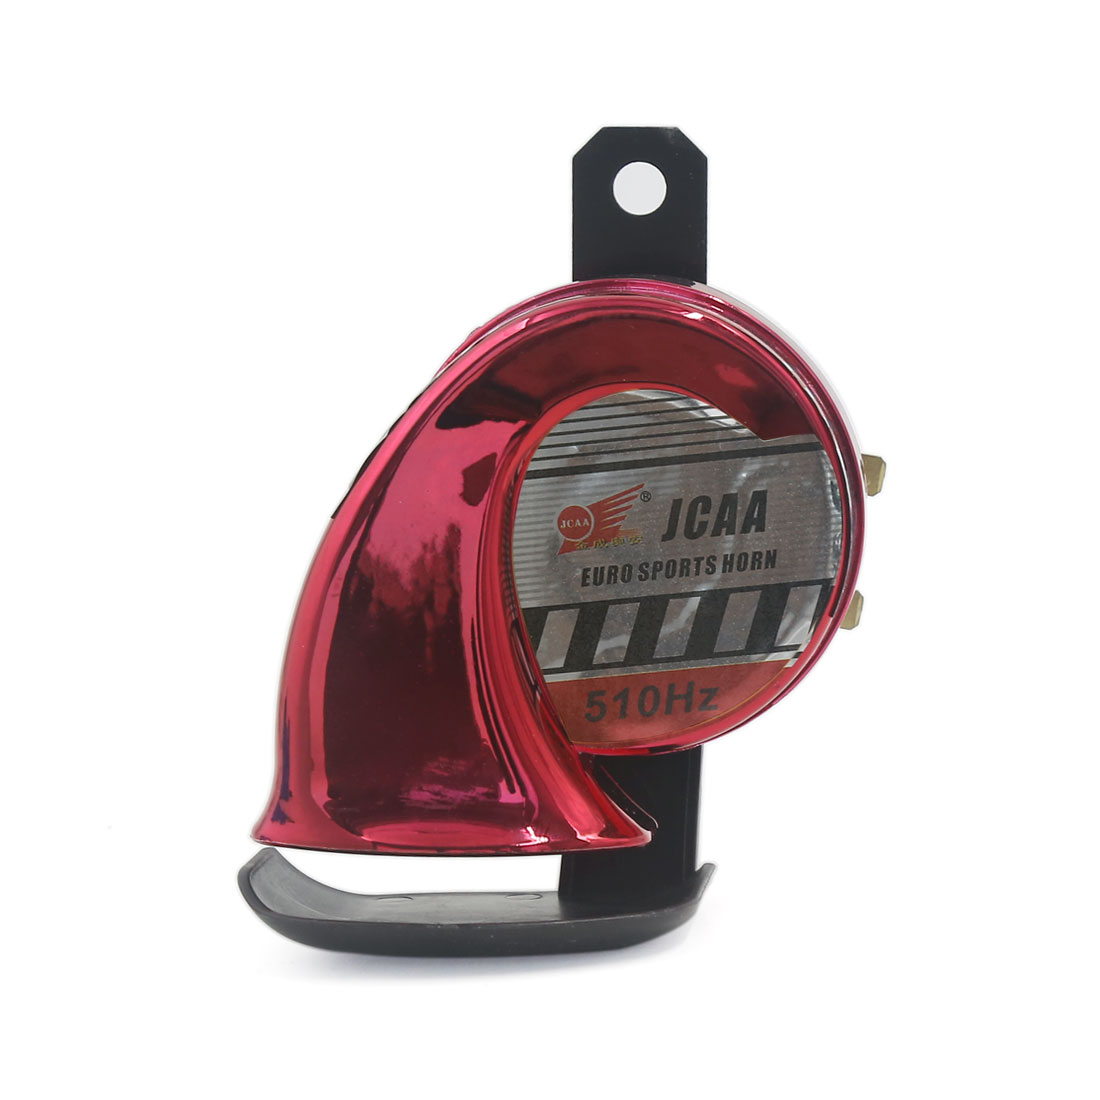 Unique Bargains Universal Motorcycle Boat Truck Red Snail Style Siren Electric Horn 510Hz 110dB